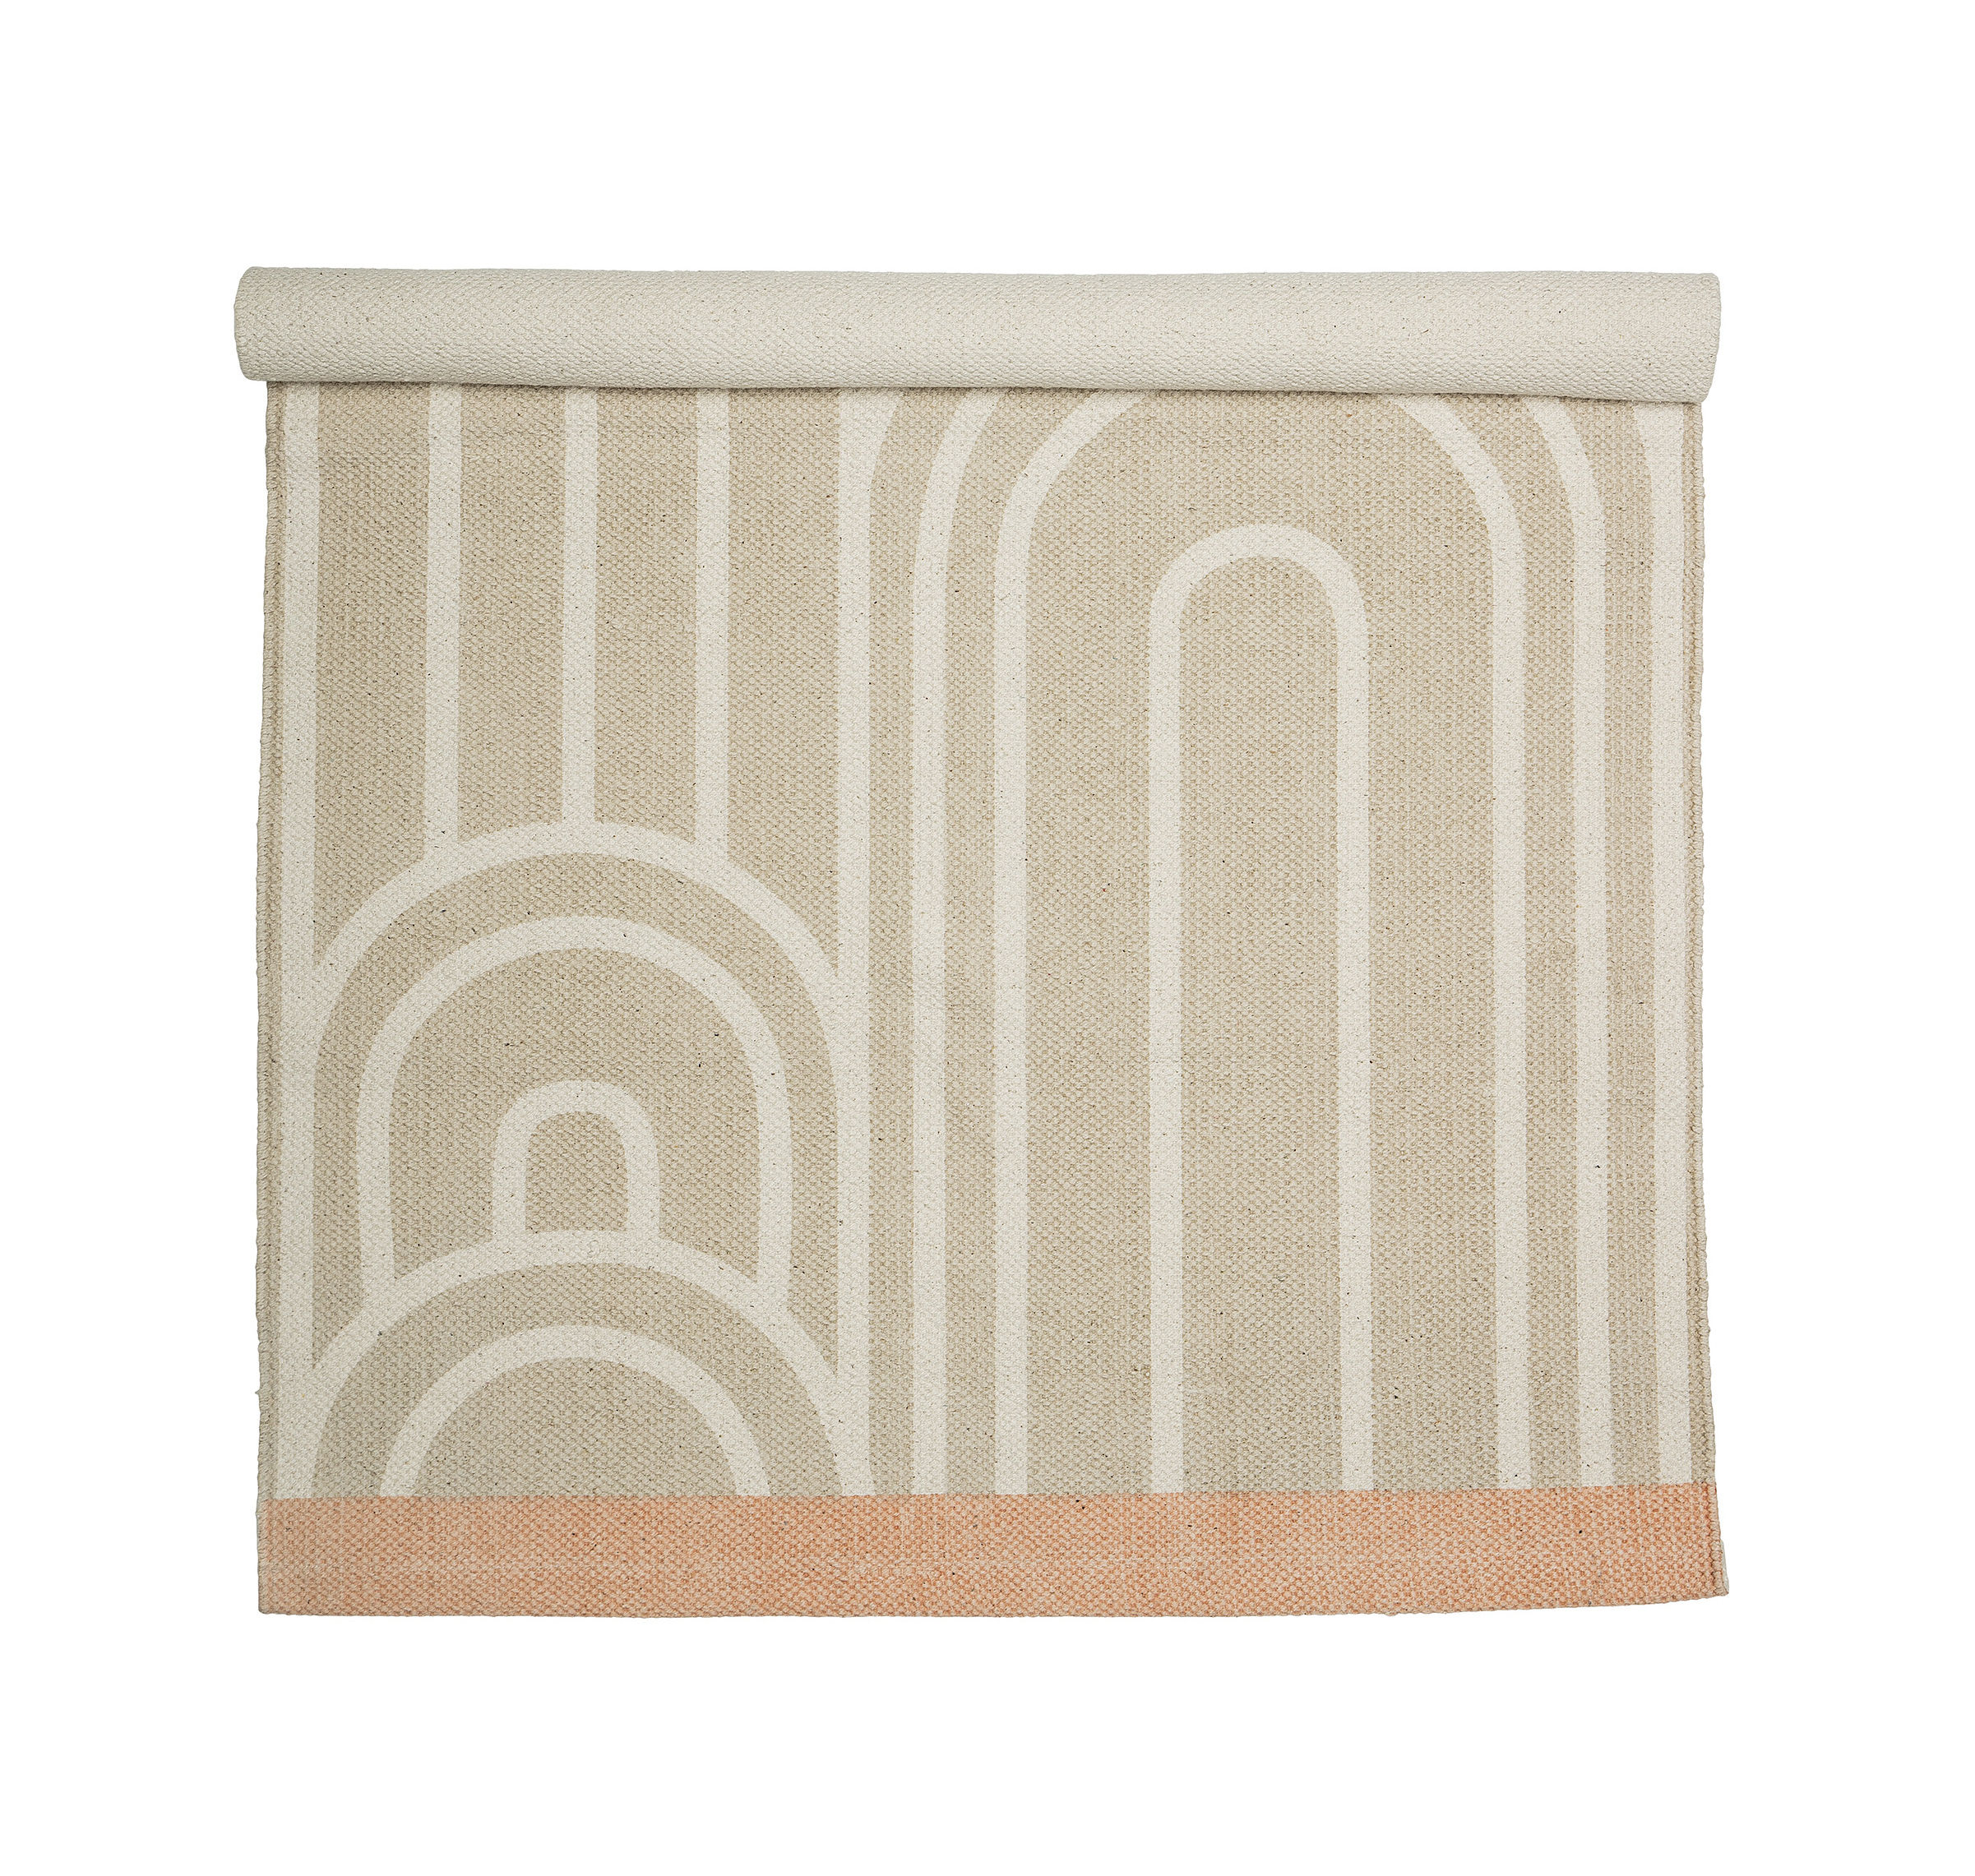 Decoration - Rugs - Rug - / Cotton - 120 x 60 cm by Bloomingville - Beige & white - Cotton